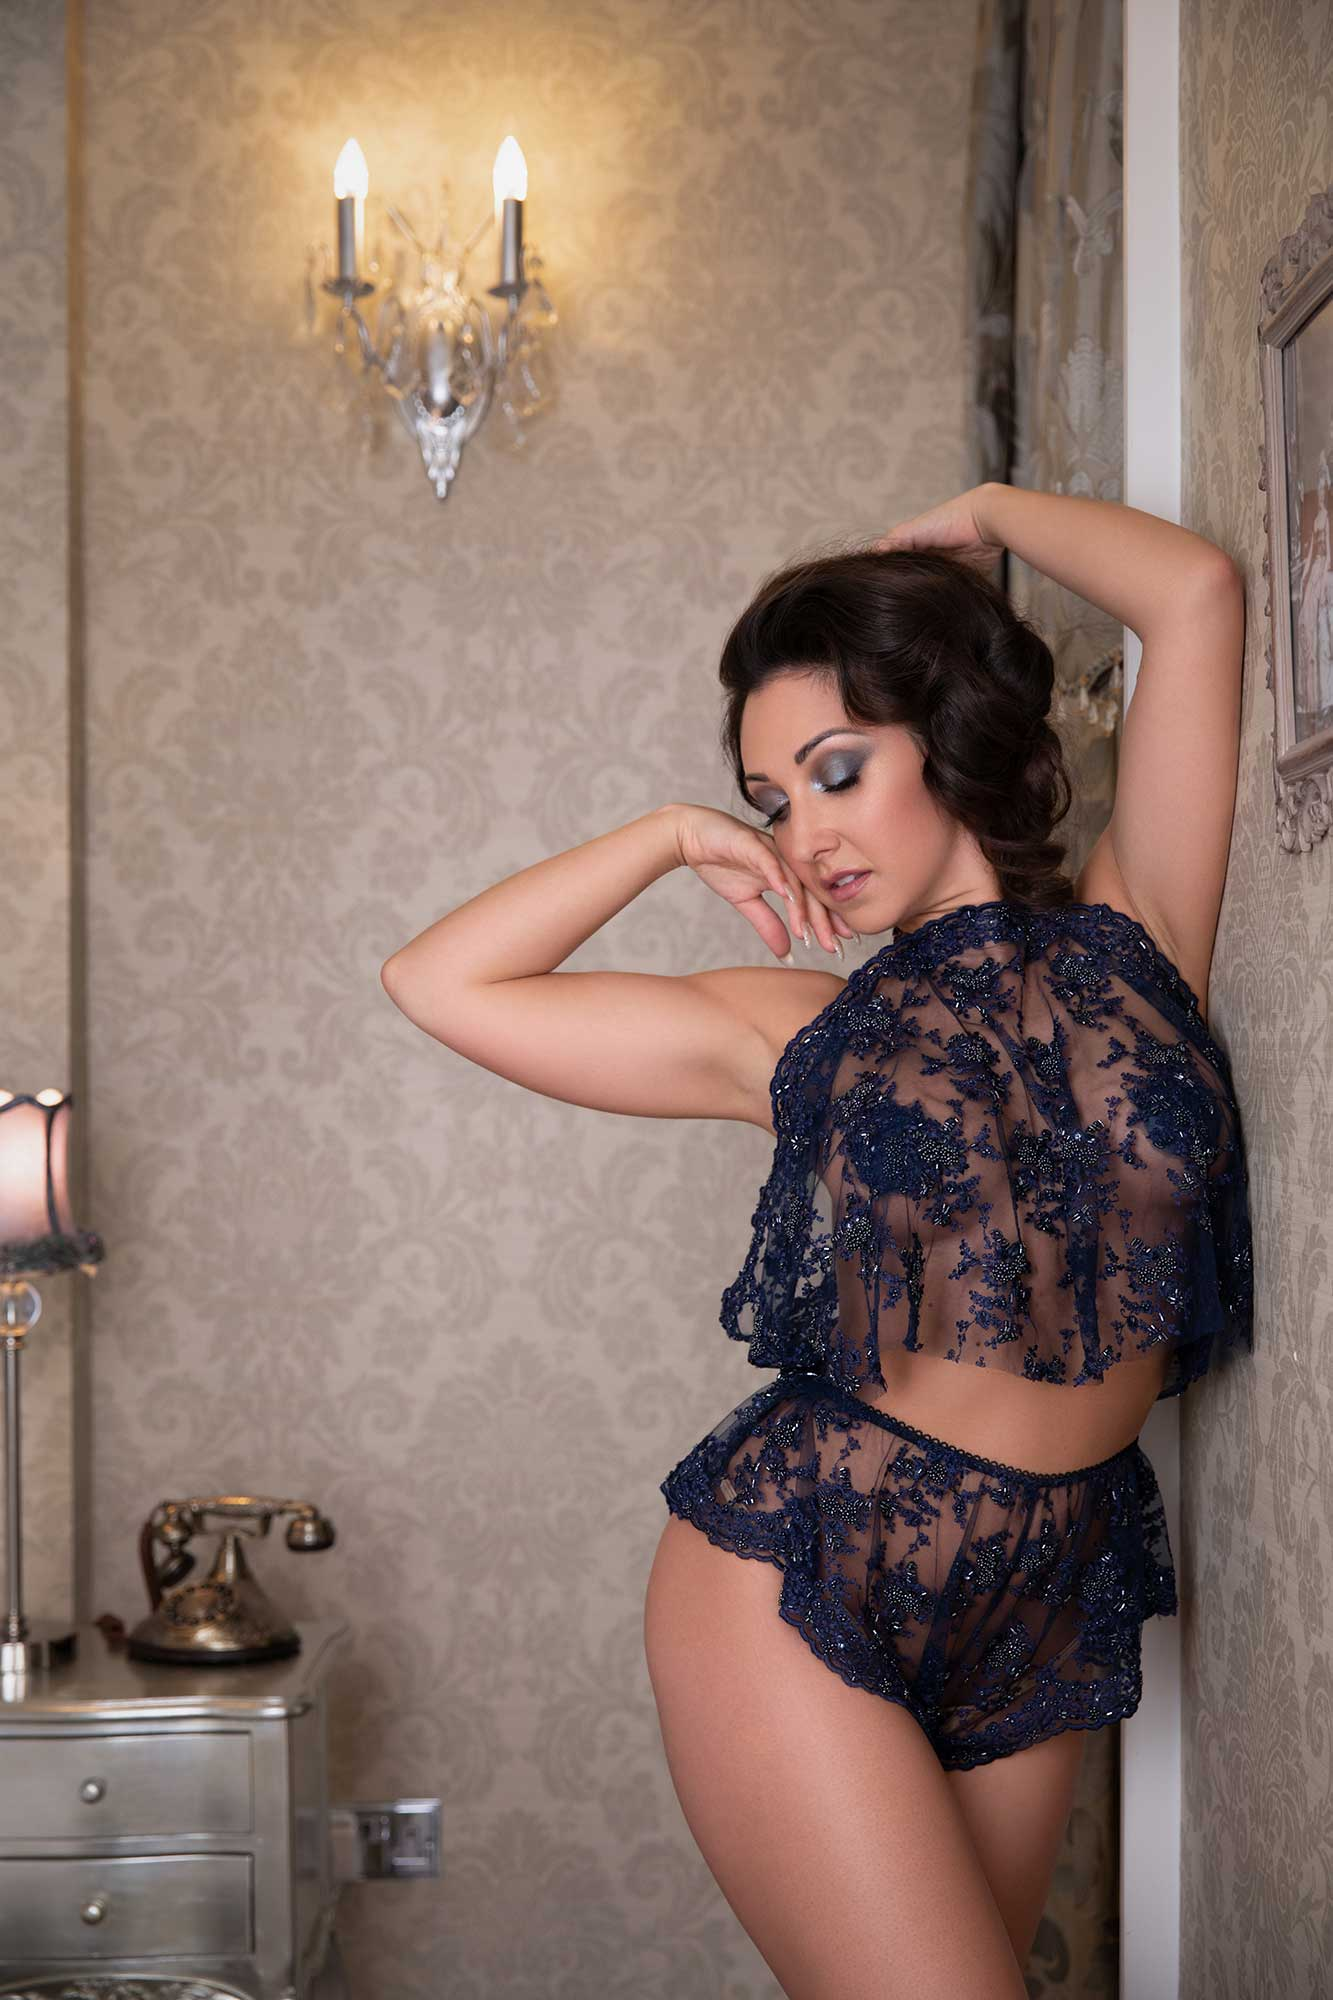 editorial brand shoot with burlesque star immodesty blaze, boudoir photography